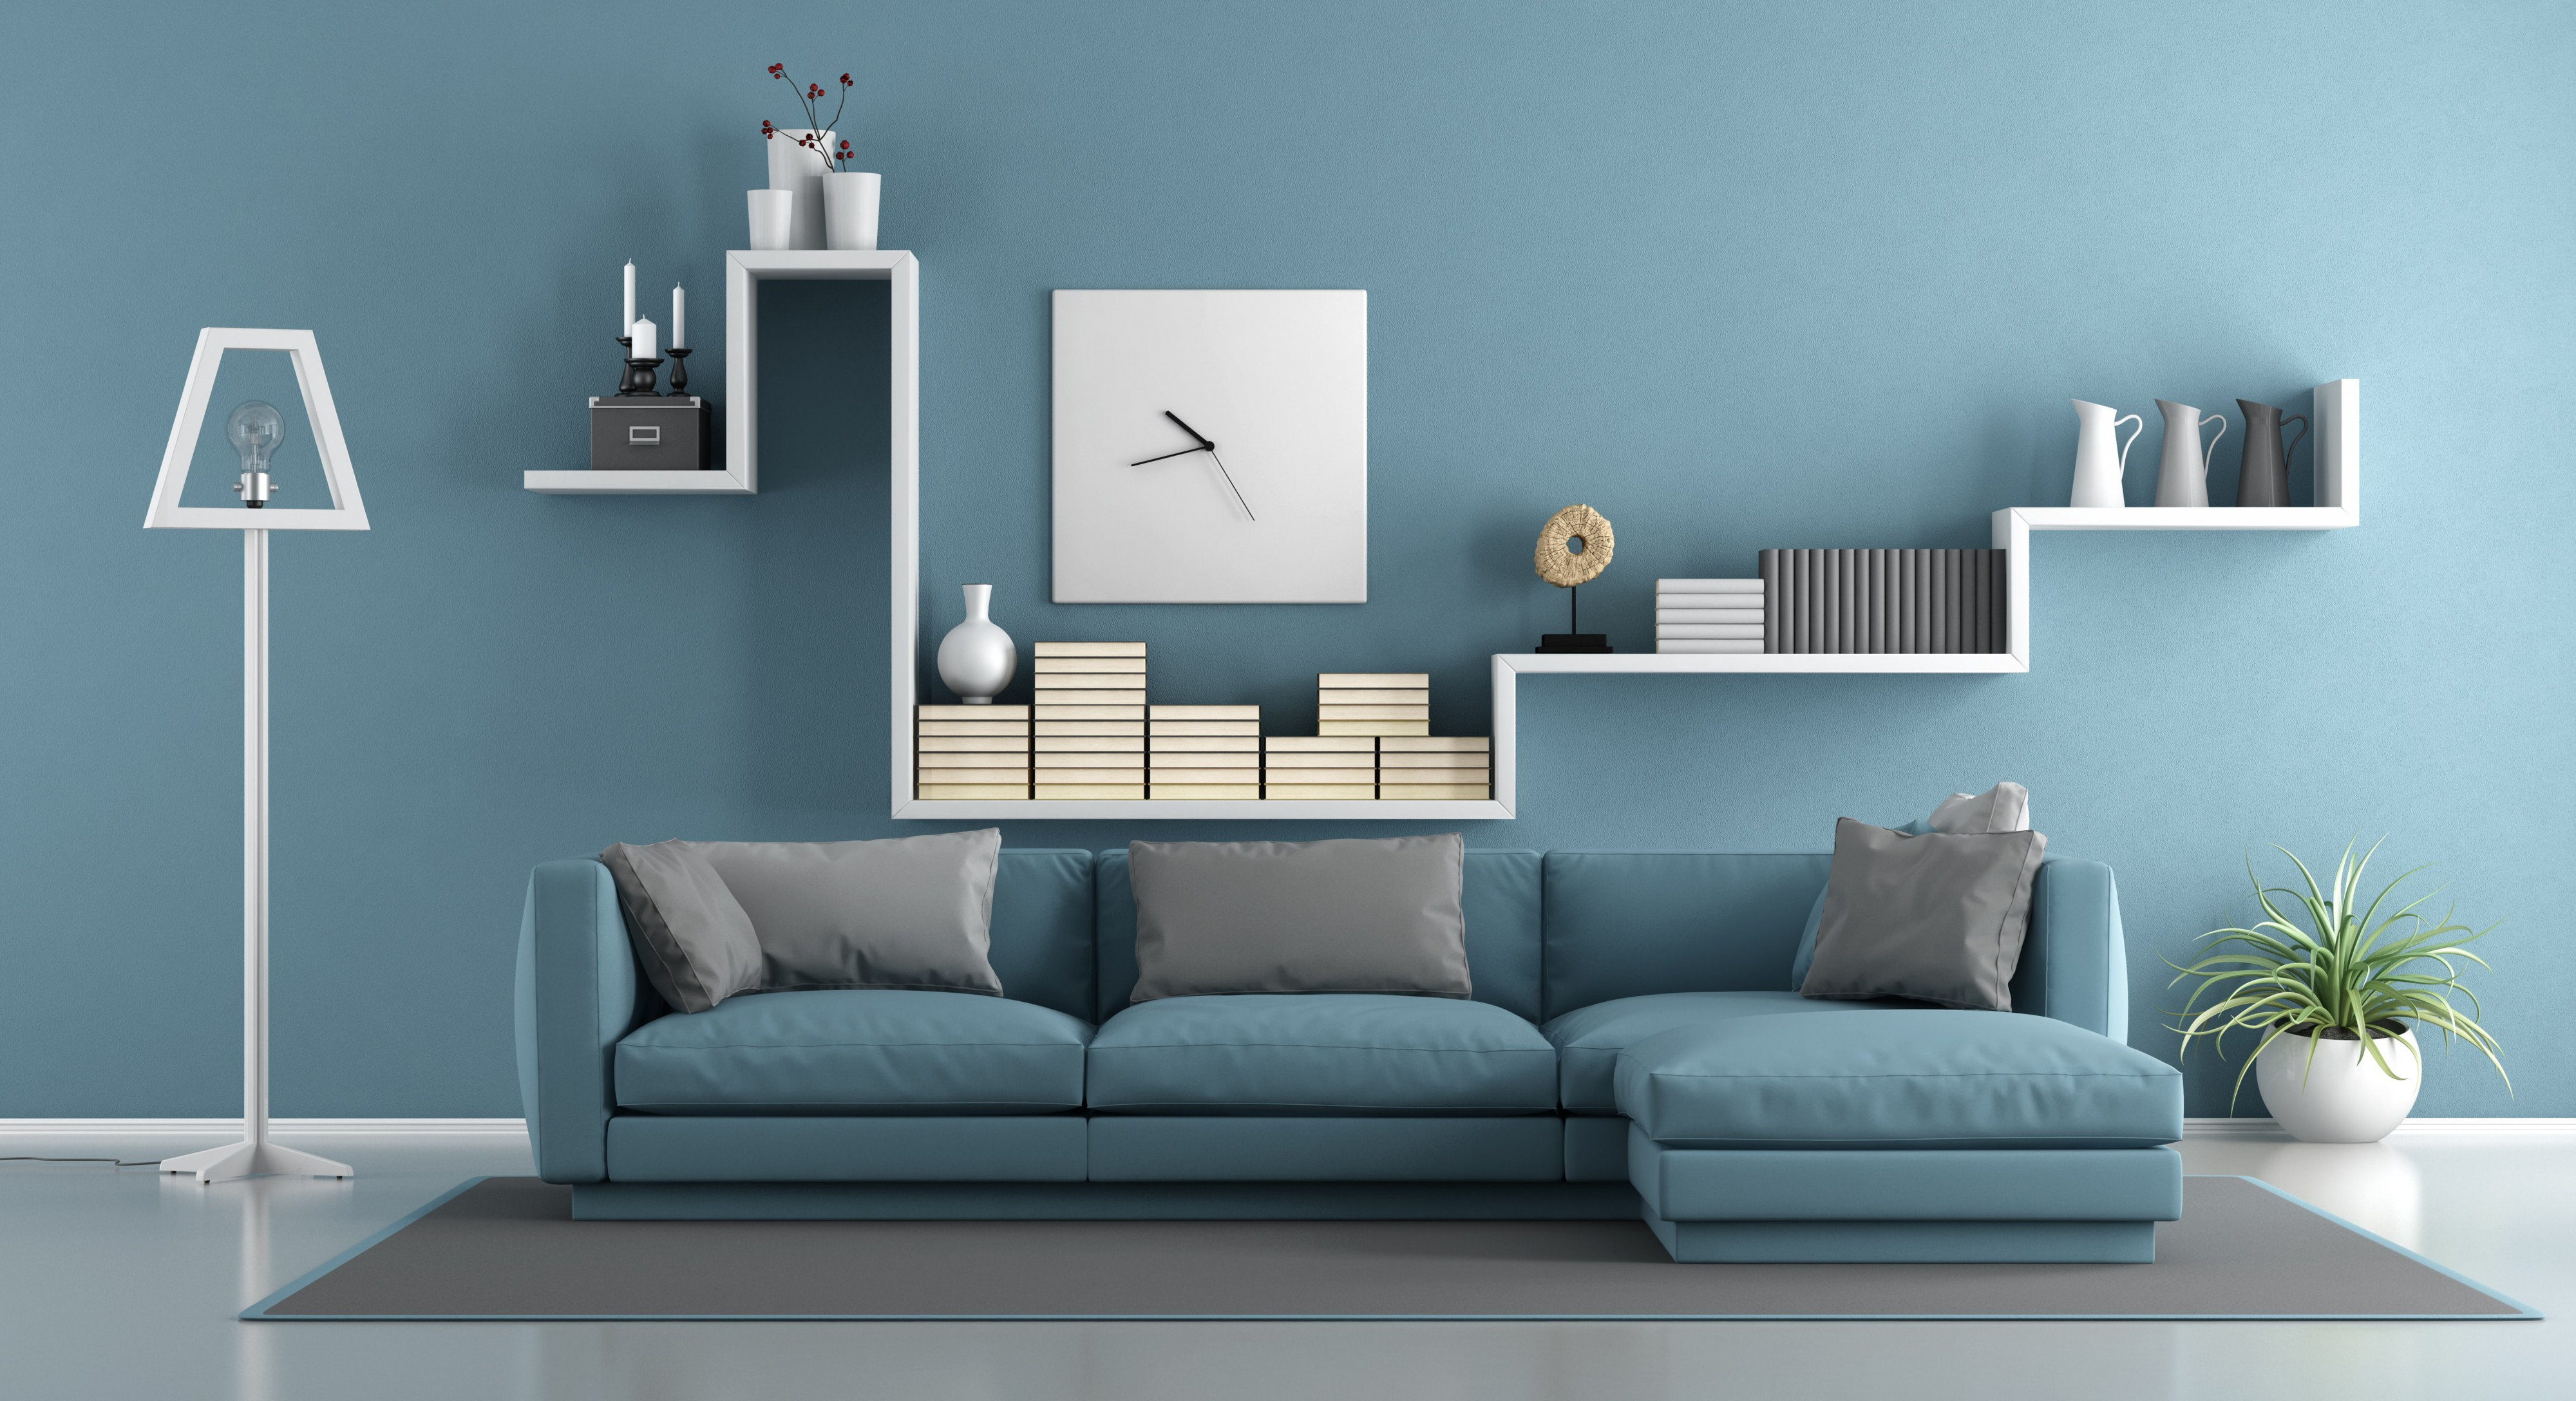 Evaluate the perfect painting scheme for your décor